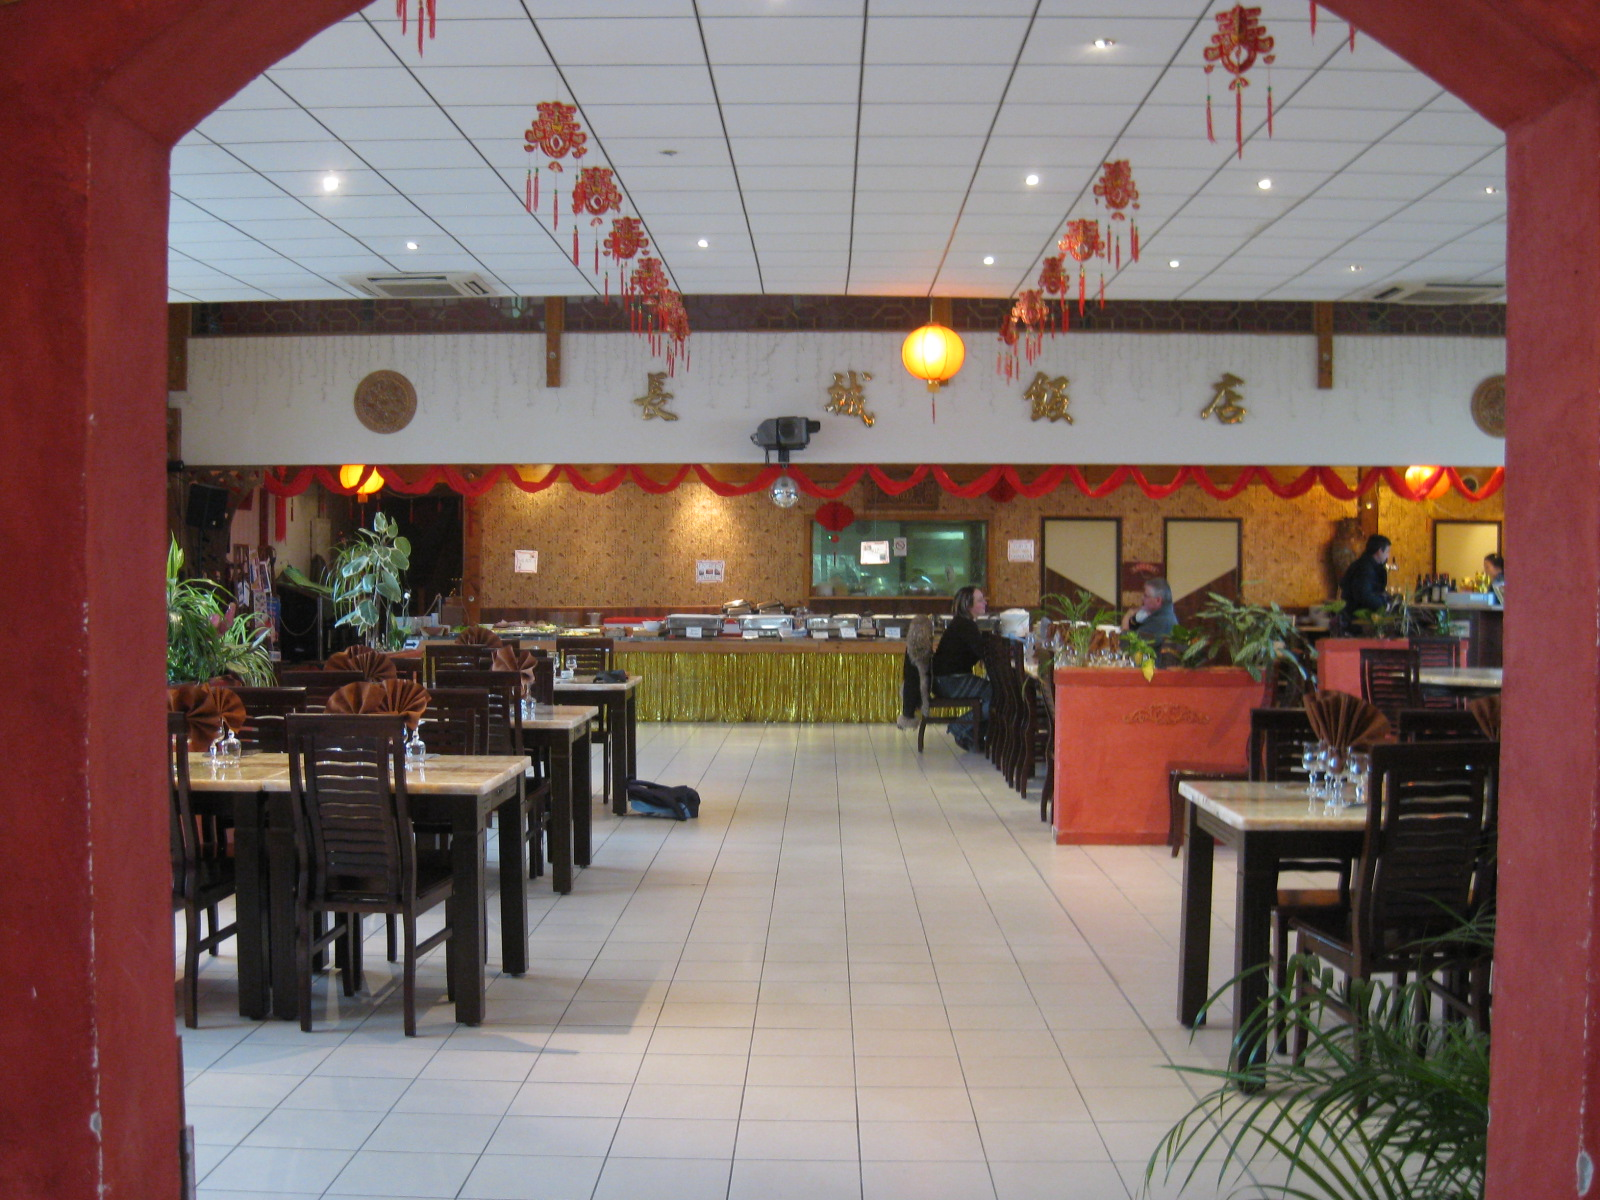 Chinese Food In France Helps With Homesickness